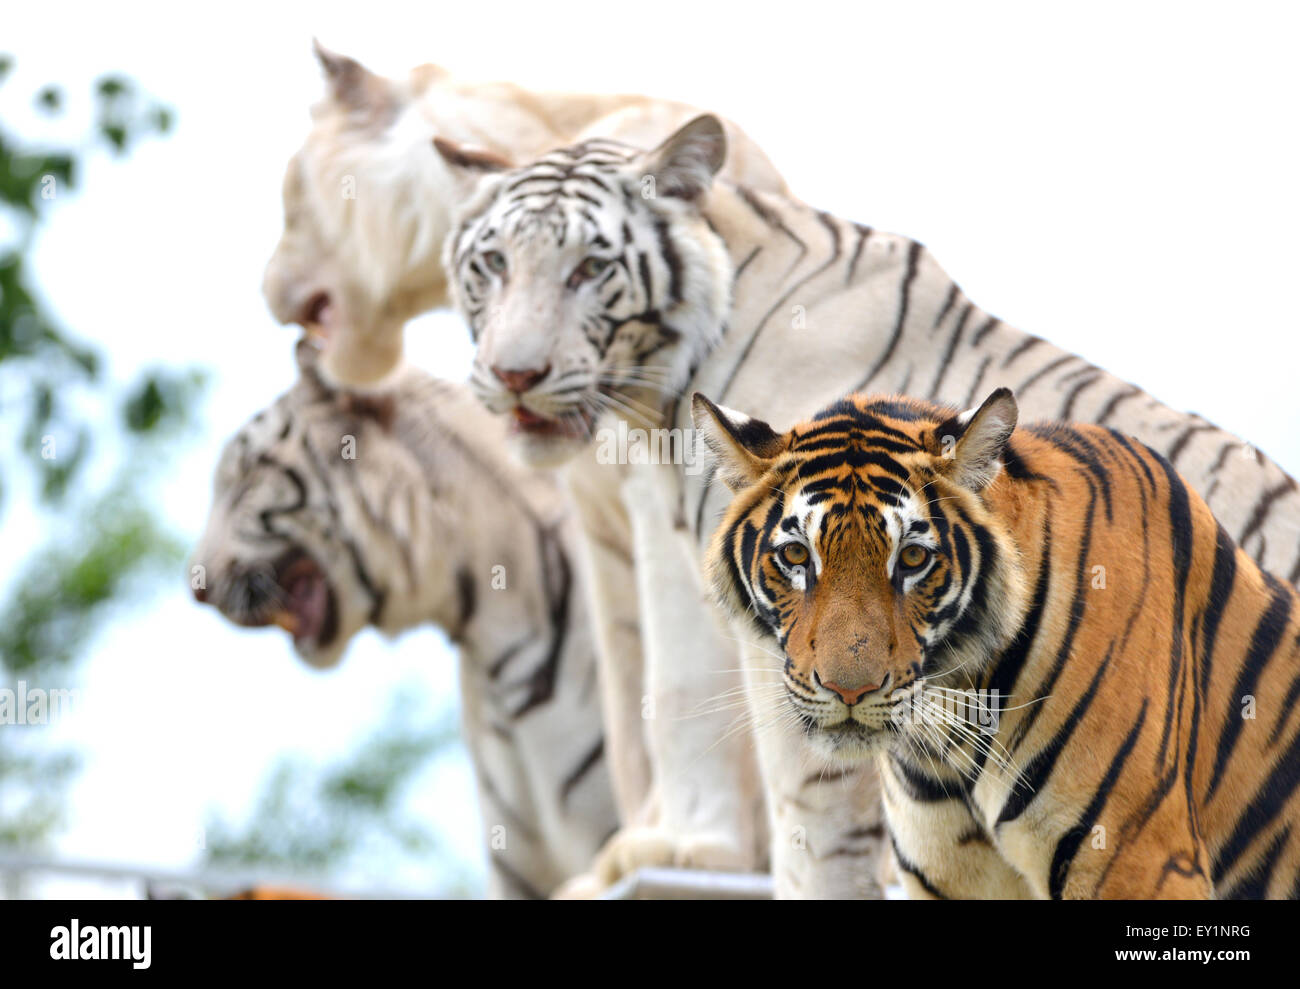 Tiger show stock photos tiger show stock images alamy - Show me a picture of the tiger ...